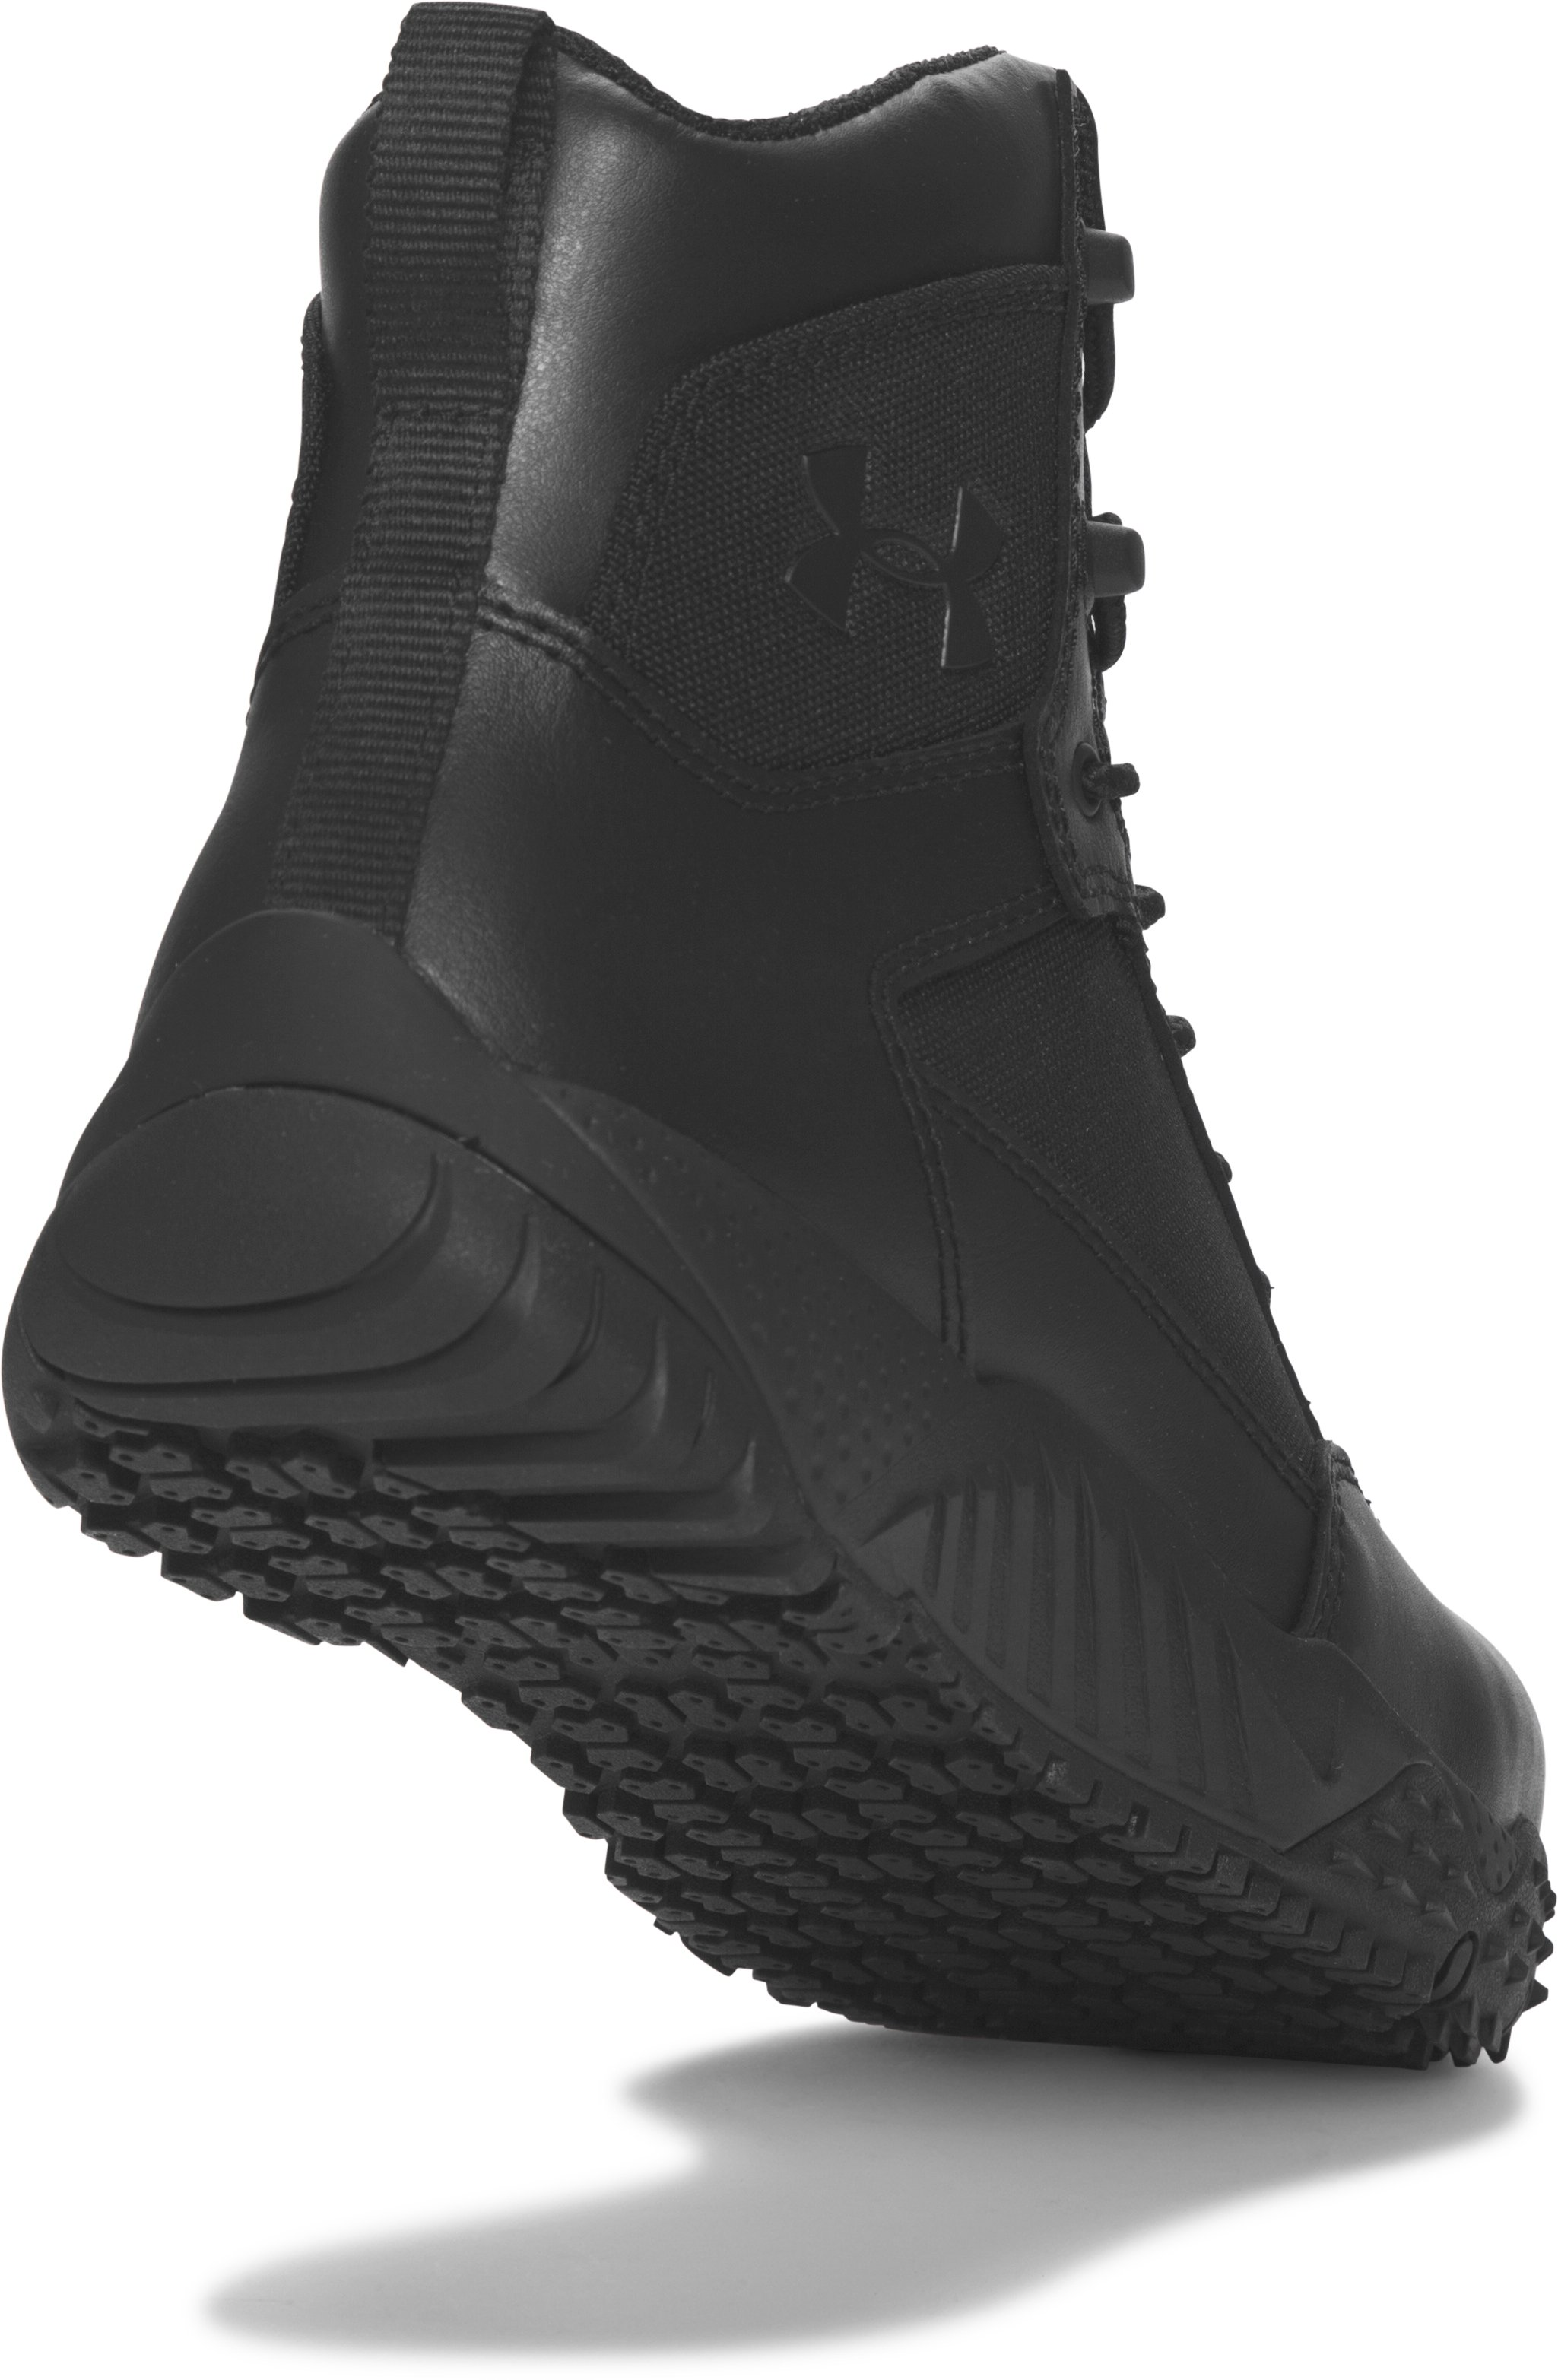 Women's UA Stellar Protect Tactical Boots, Black , undefined